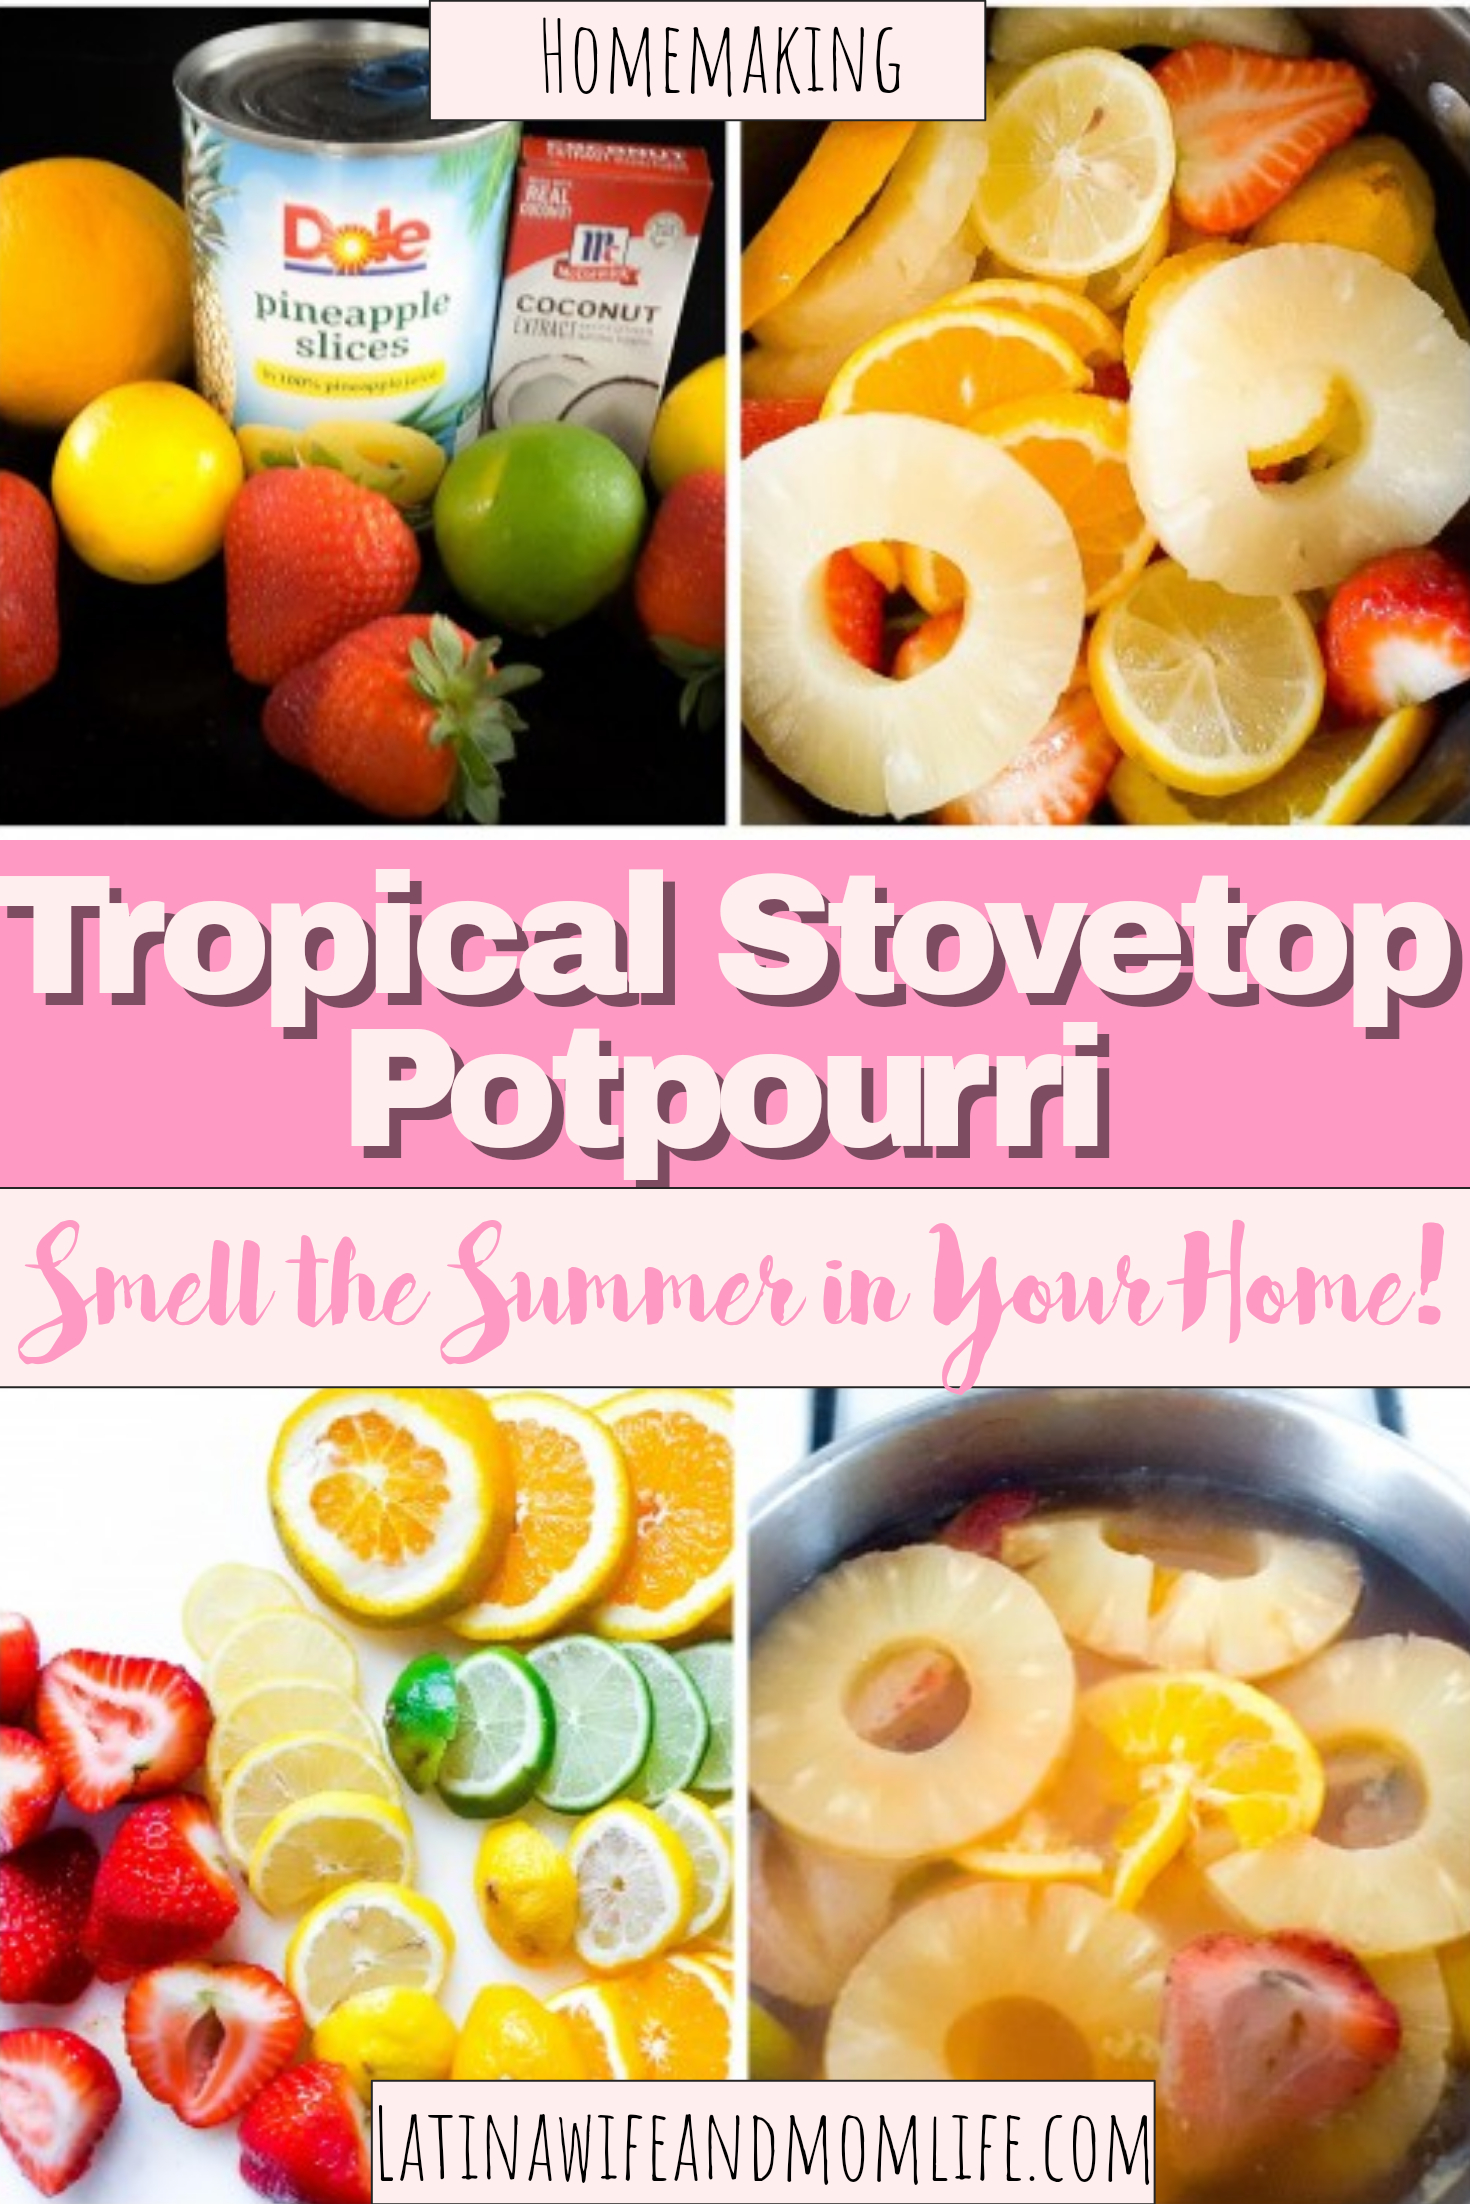 Did you know that 75% of emotions are triggered by smells? If you want a sense of freshness in your home, don't miss this DIY Tropical Stovetop Potpourri